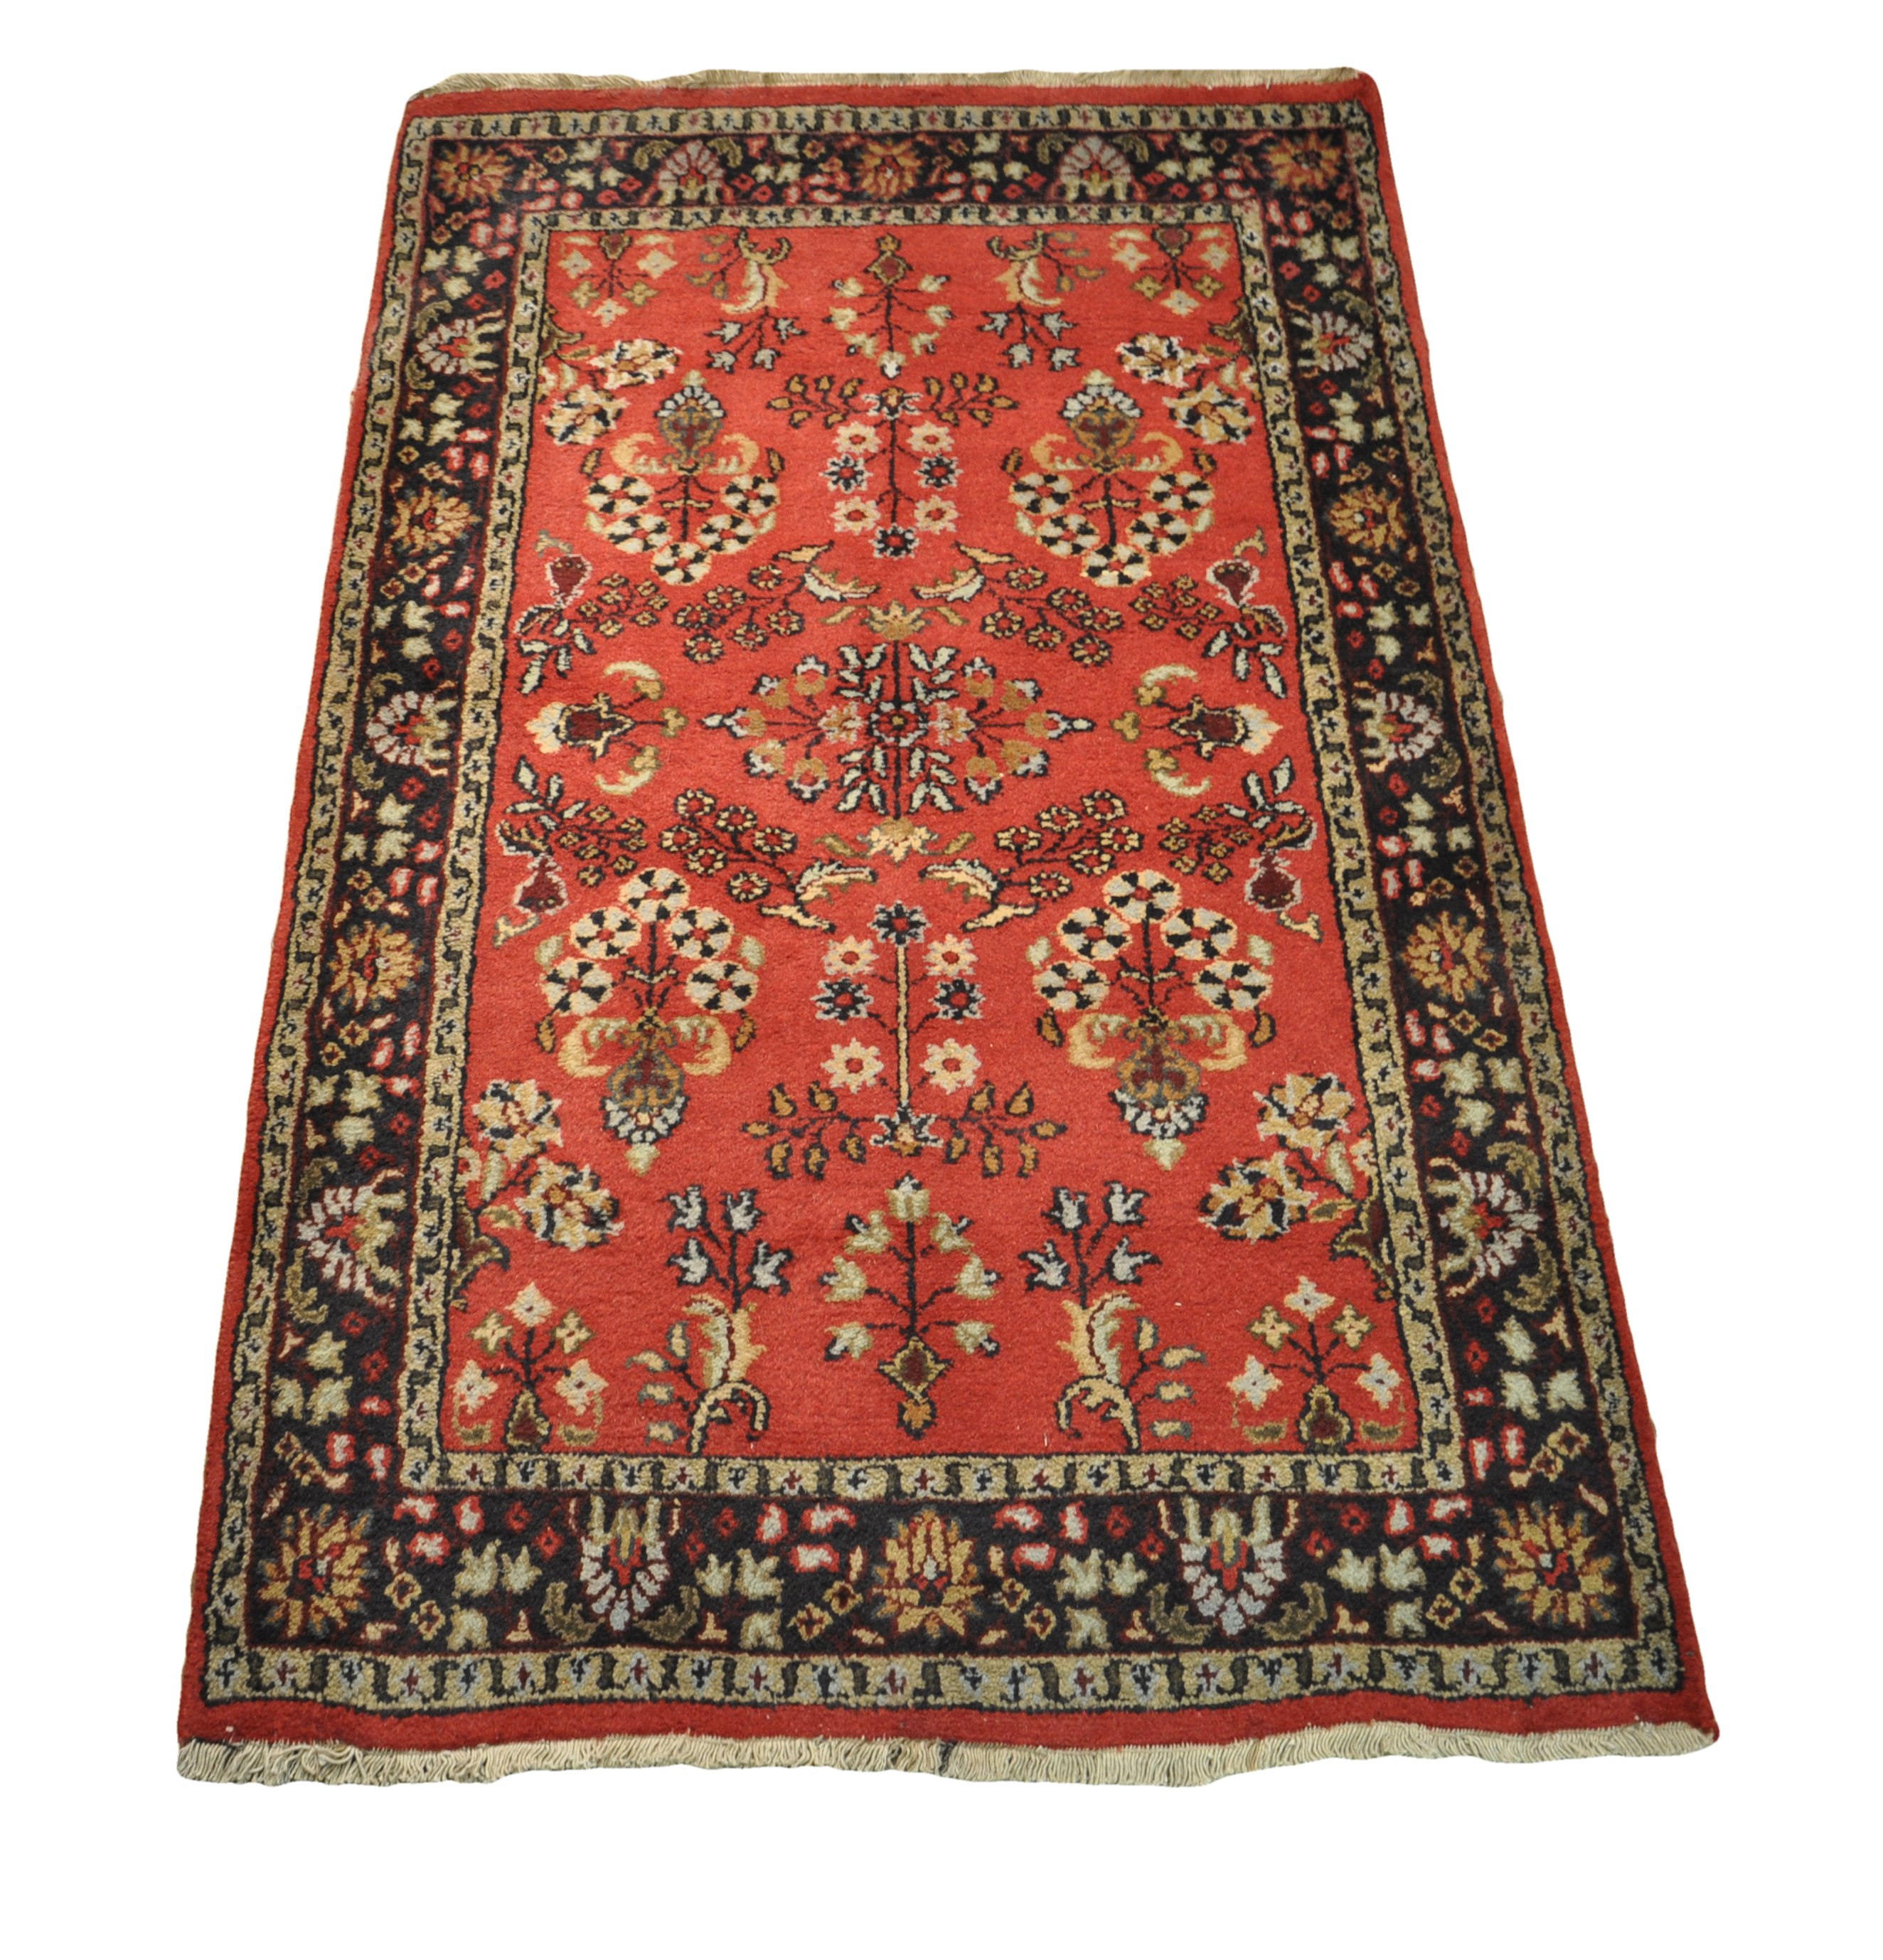 Hand-knotted Rug 3' x 5' Sarouk Red Traditional